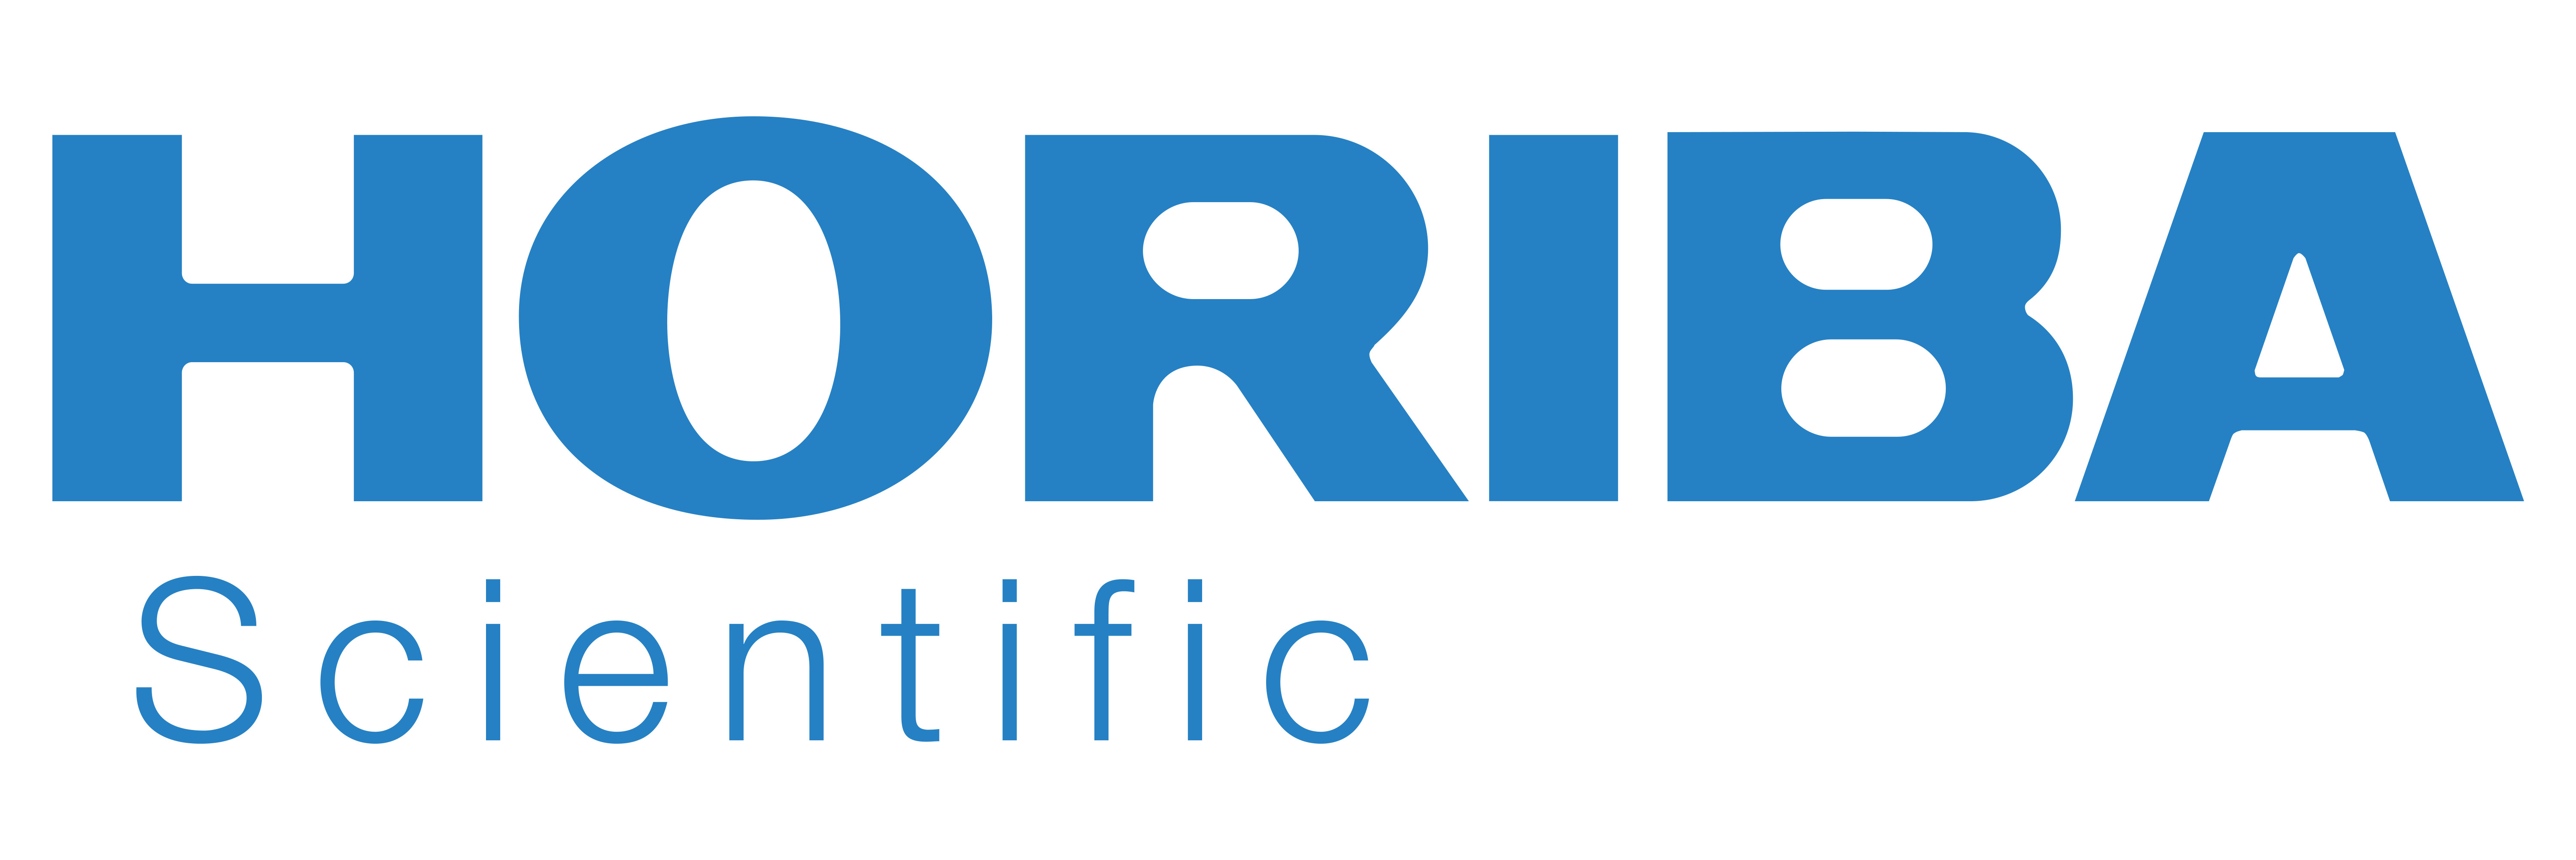 Horiba Scientific